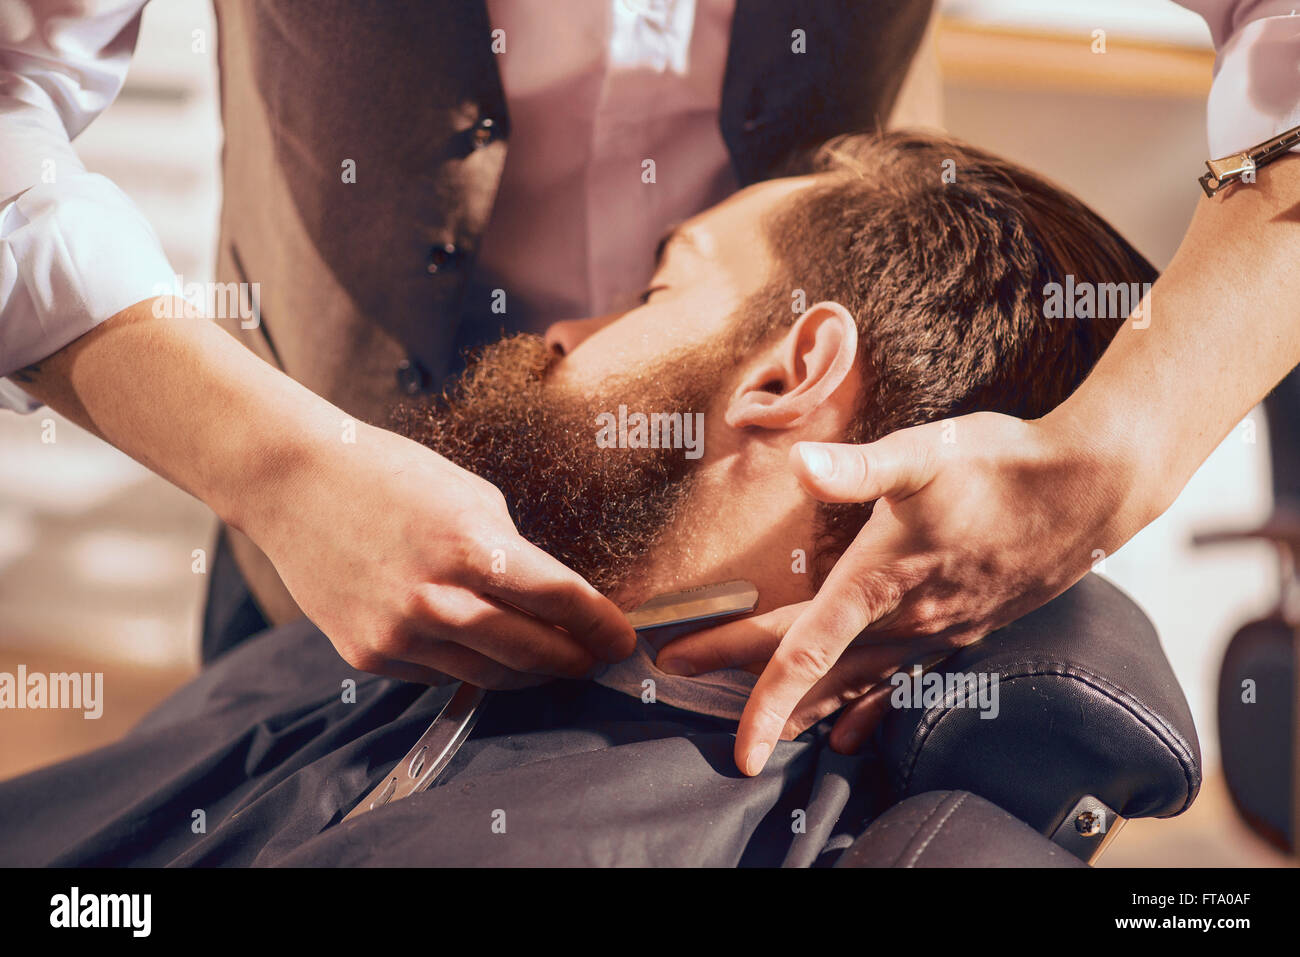 Professional barber shaving beard of his client - Stock Image